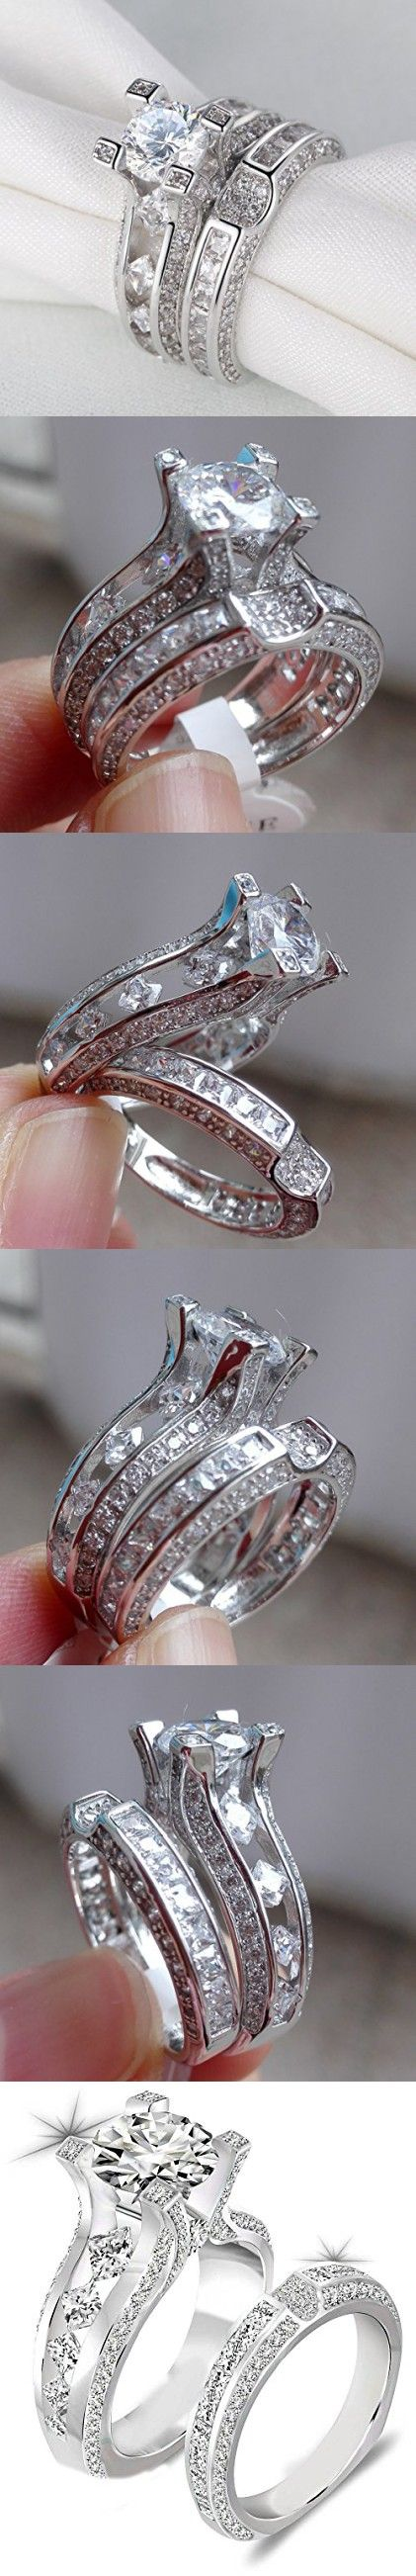 Newshe Jewellery 3ct Round Cz 925 Sterling Silver Wedding Band Engagement Ring Sets Size 7